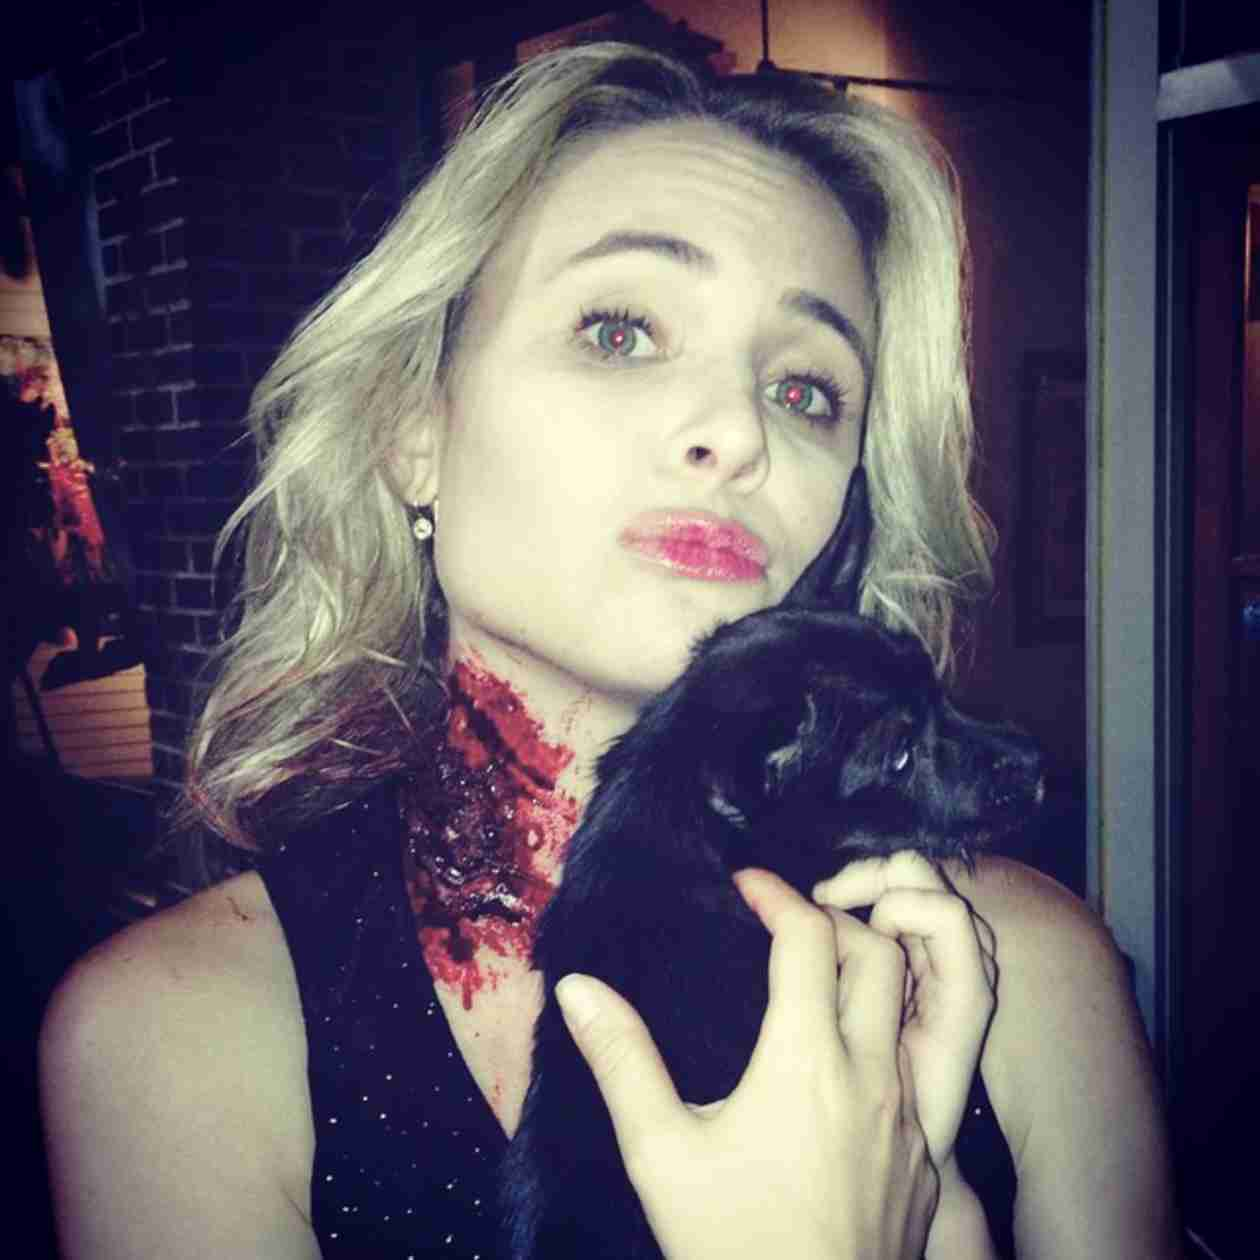 A.j. Trauth And Leah Pipes The Originals Season 2